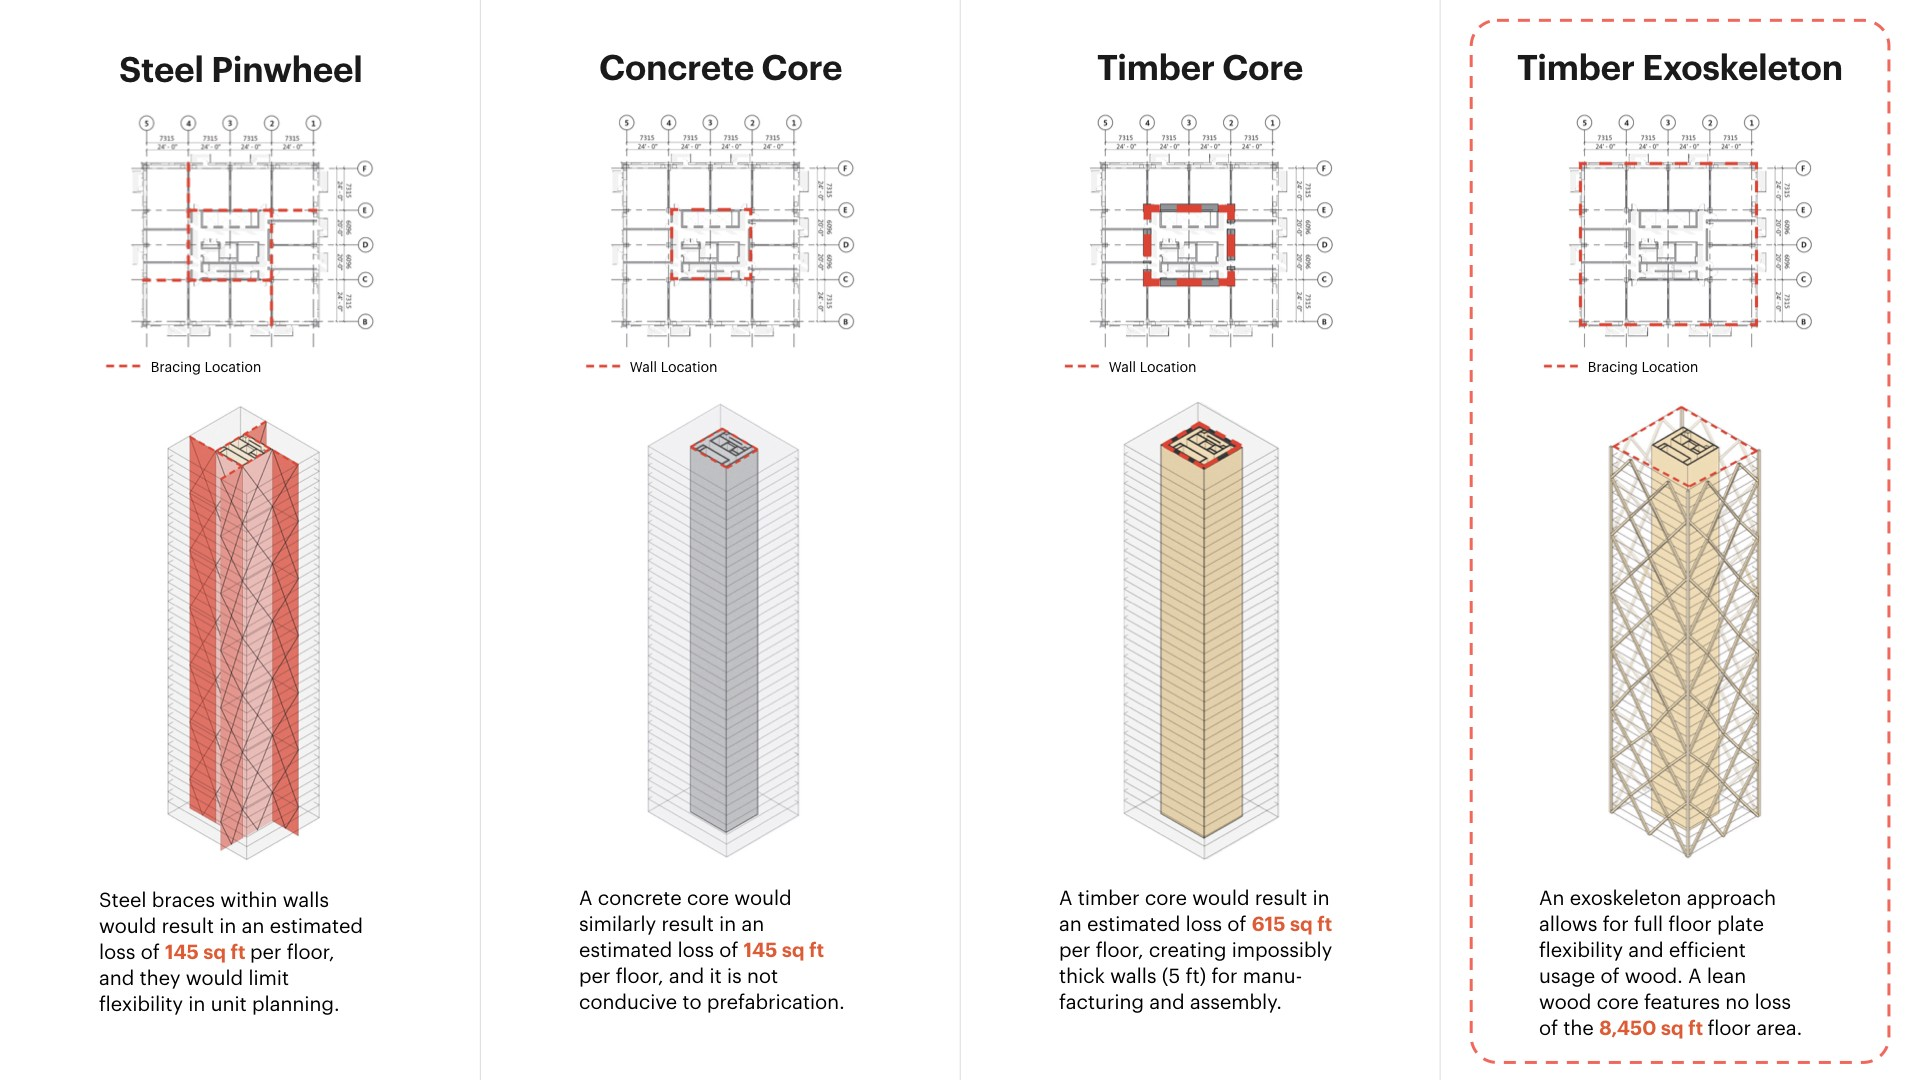 Graphic shows 4 different structural systems for high-rise buildings; each structure has different interior square footage.